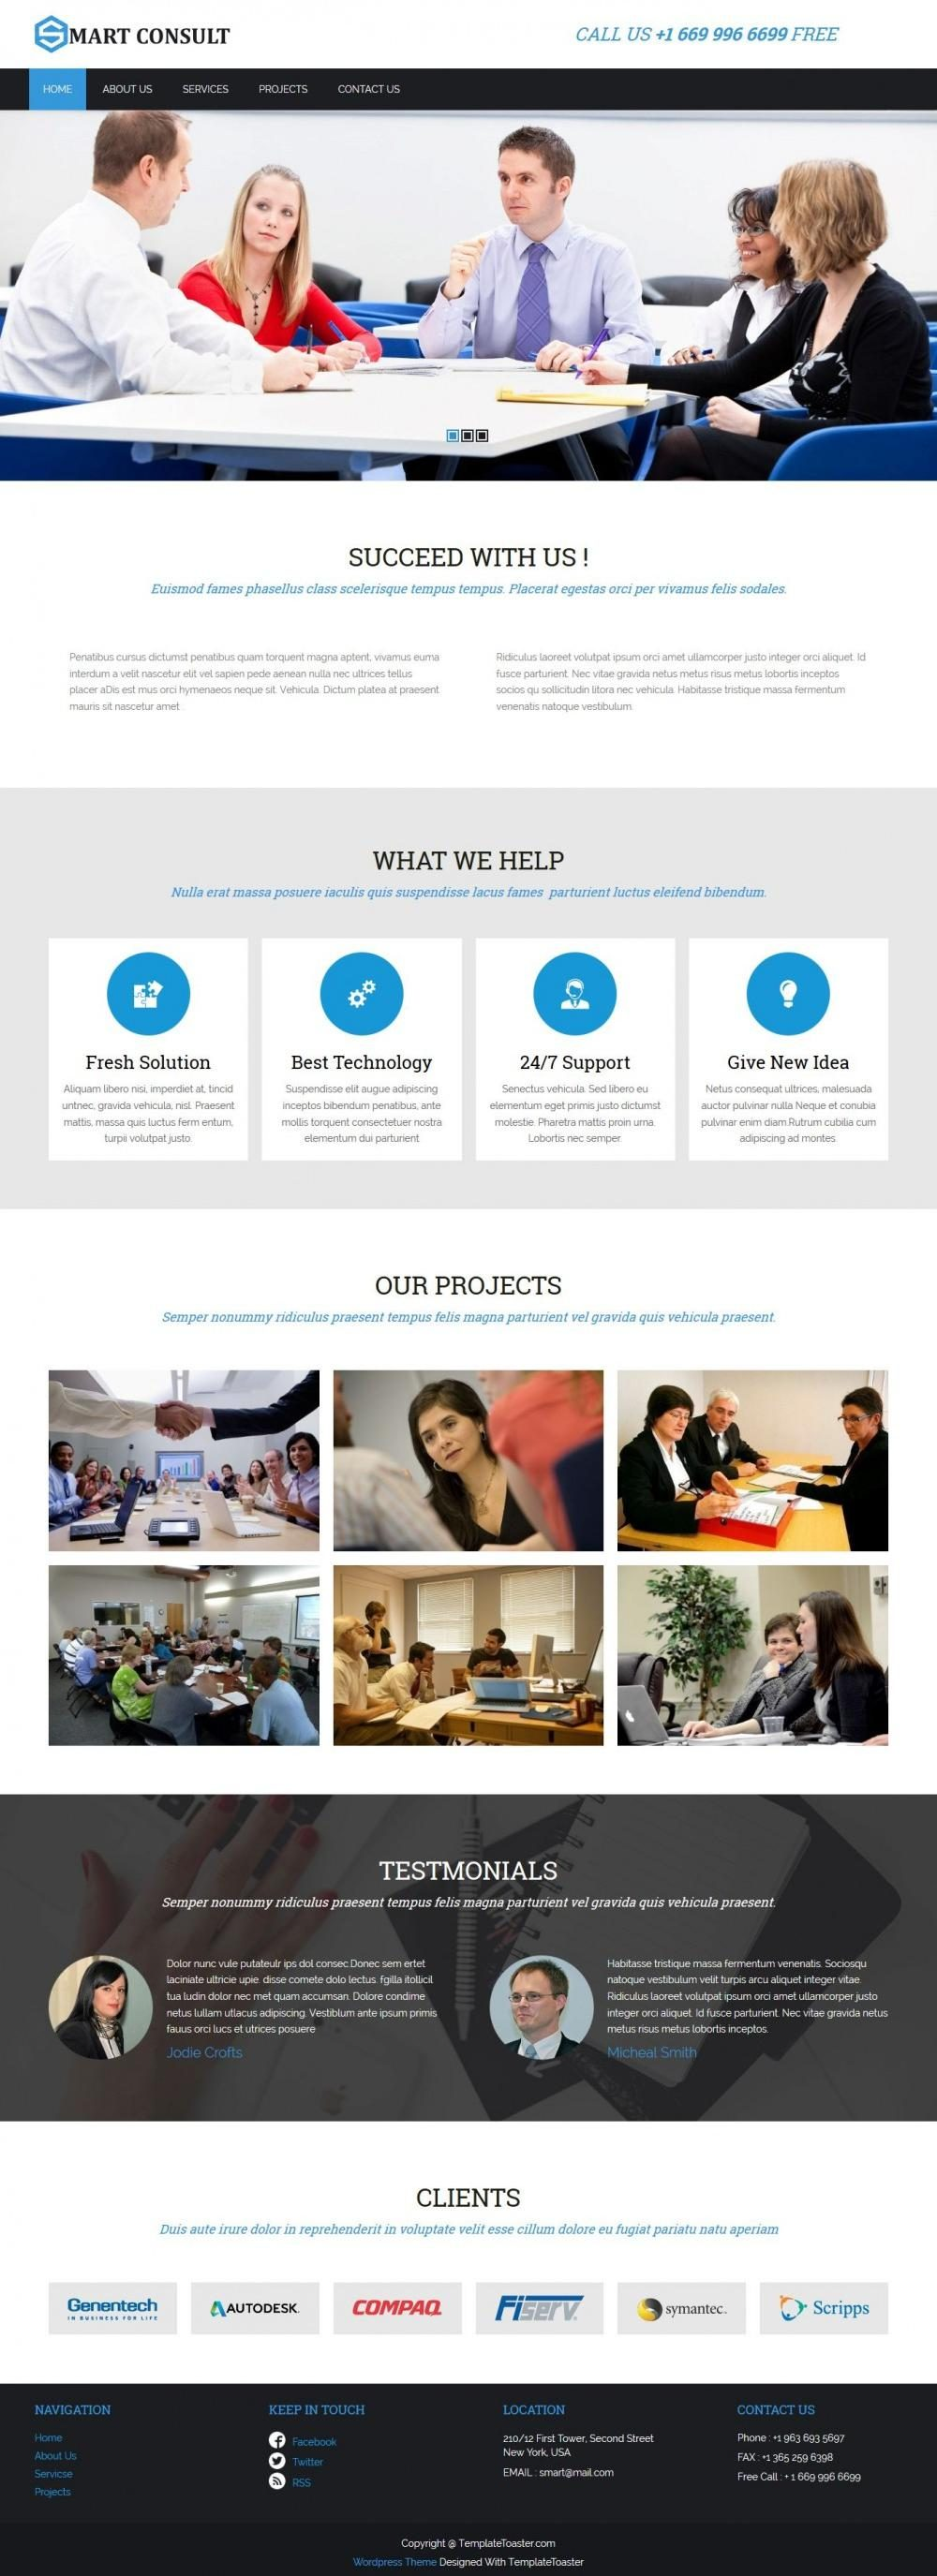 smart consultant business marketing services blogger template